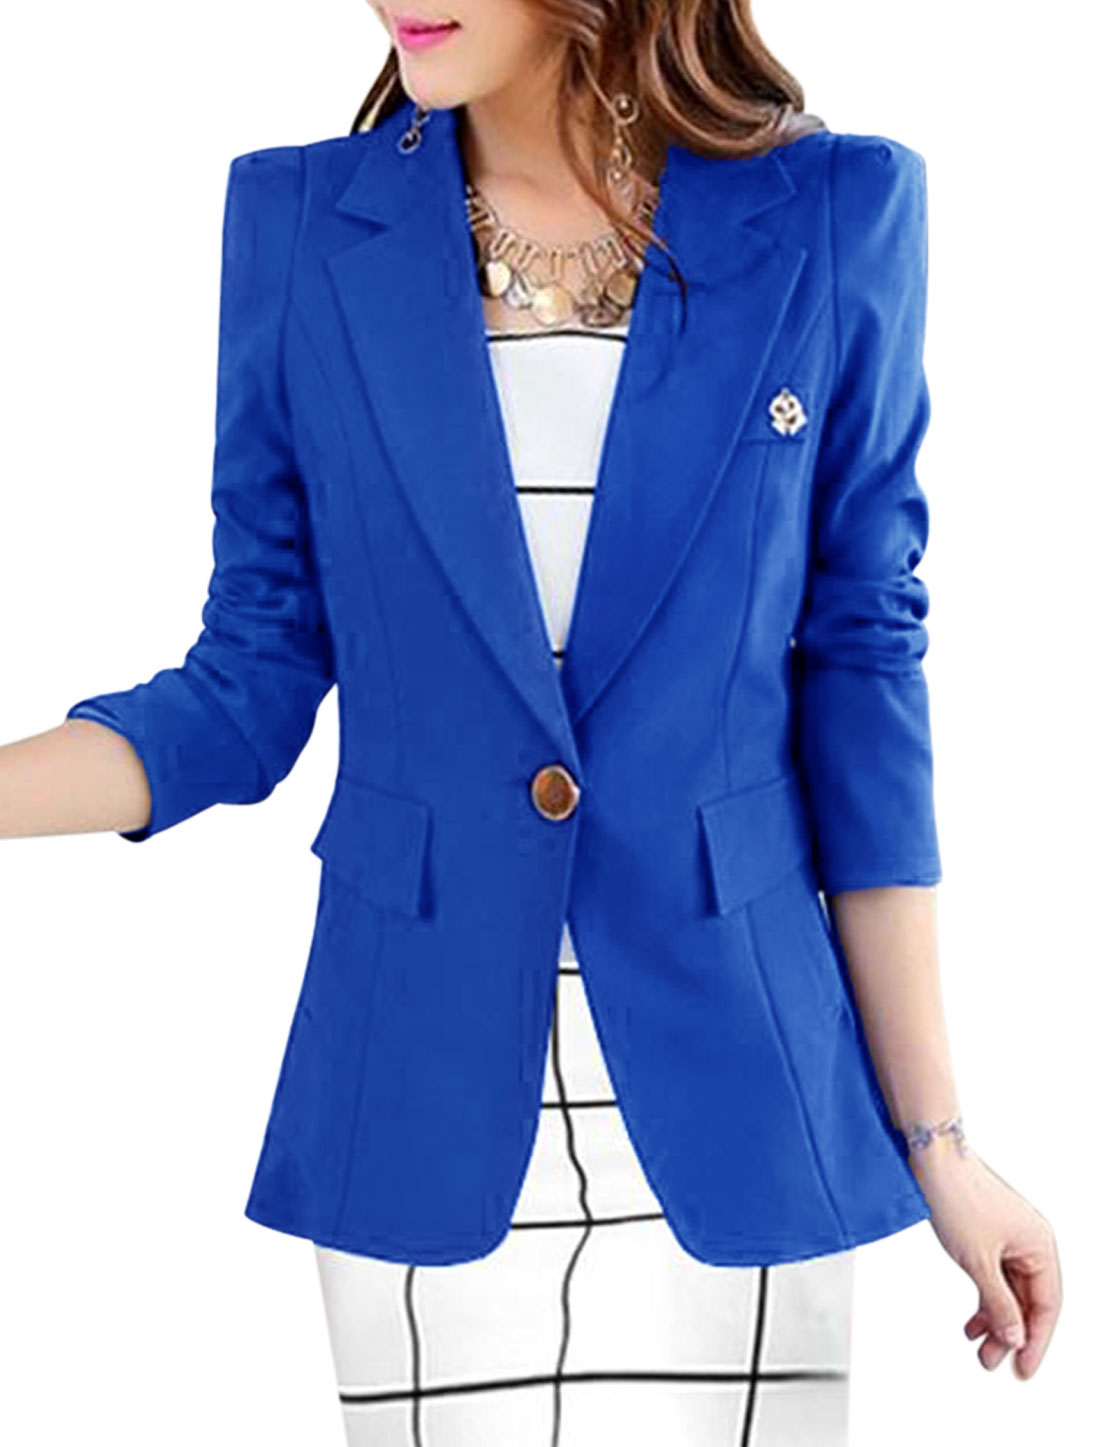 Lady One Button Closure Front Fashionable Casual Blazer Royal Blue L